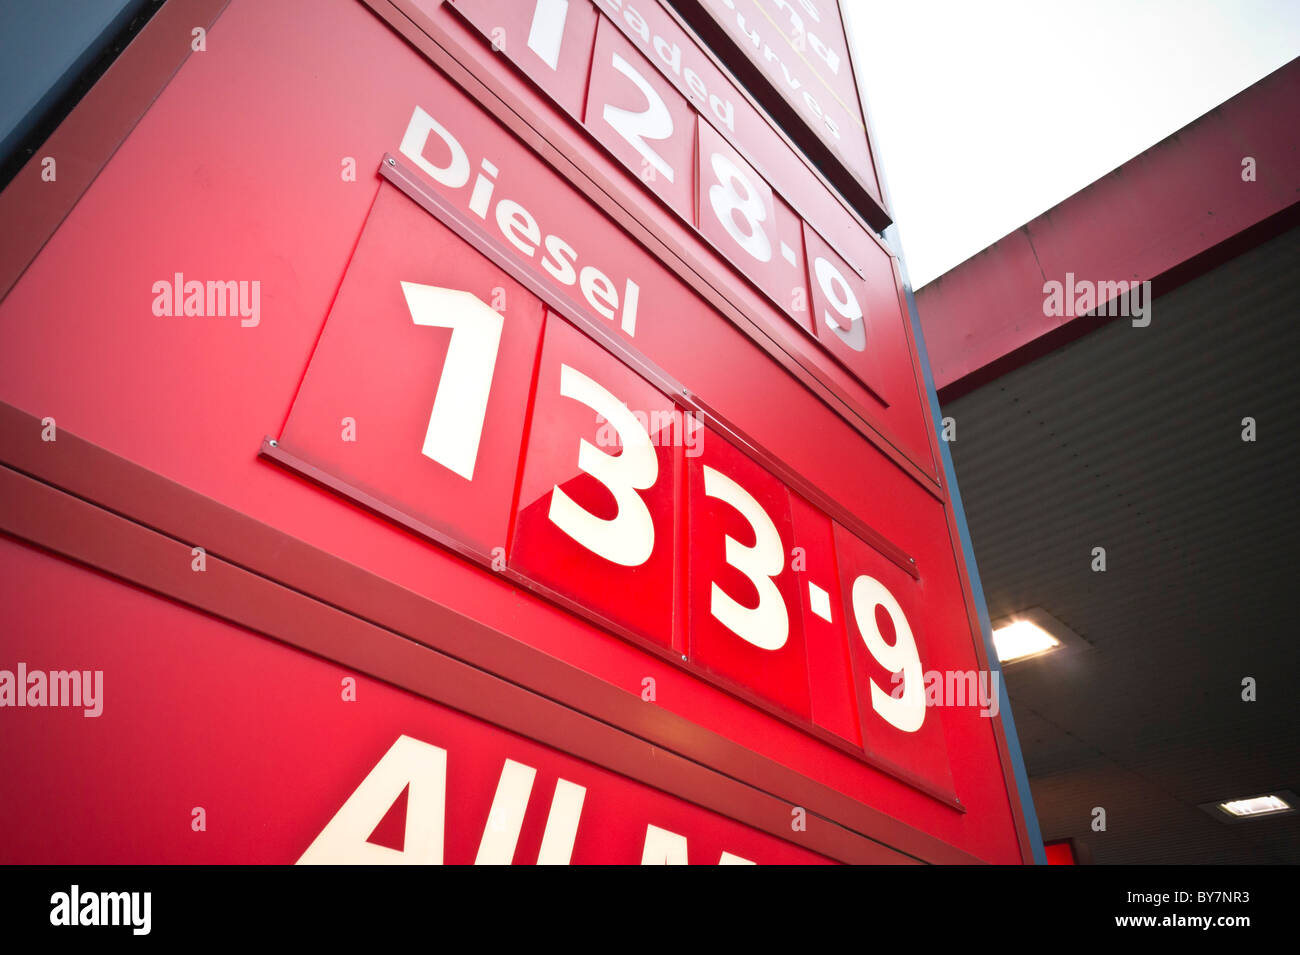 Diesel Pump Uk Stock Photos & Diesel Pump Uk Stock Images